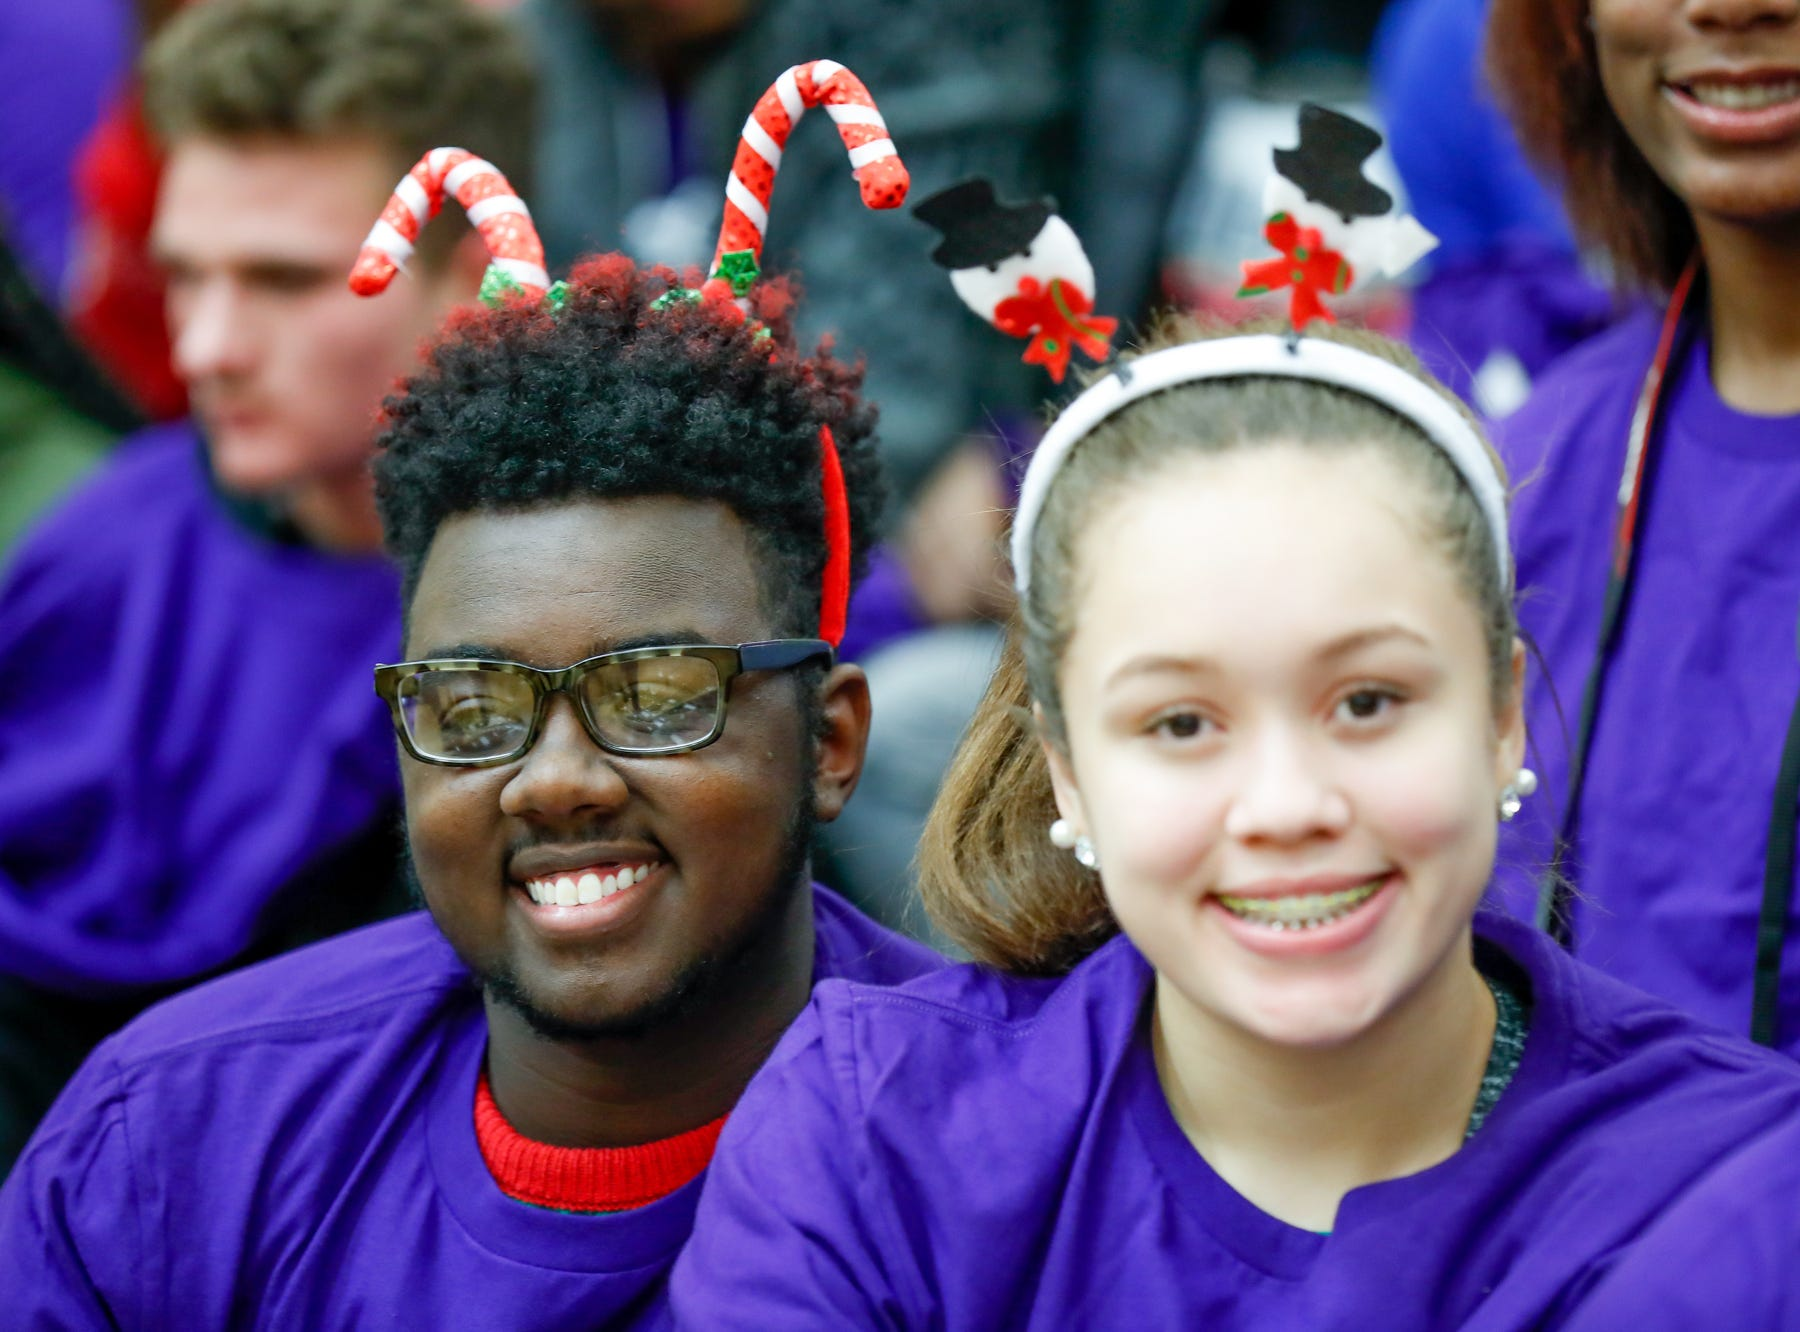 Students dress in purple in support of those suffering from epilepsy during a varsity boys basketball game between Cathedral High School and Warren Central High School at Warren Central on Friday, Dec. 7, 2018.